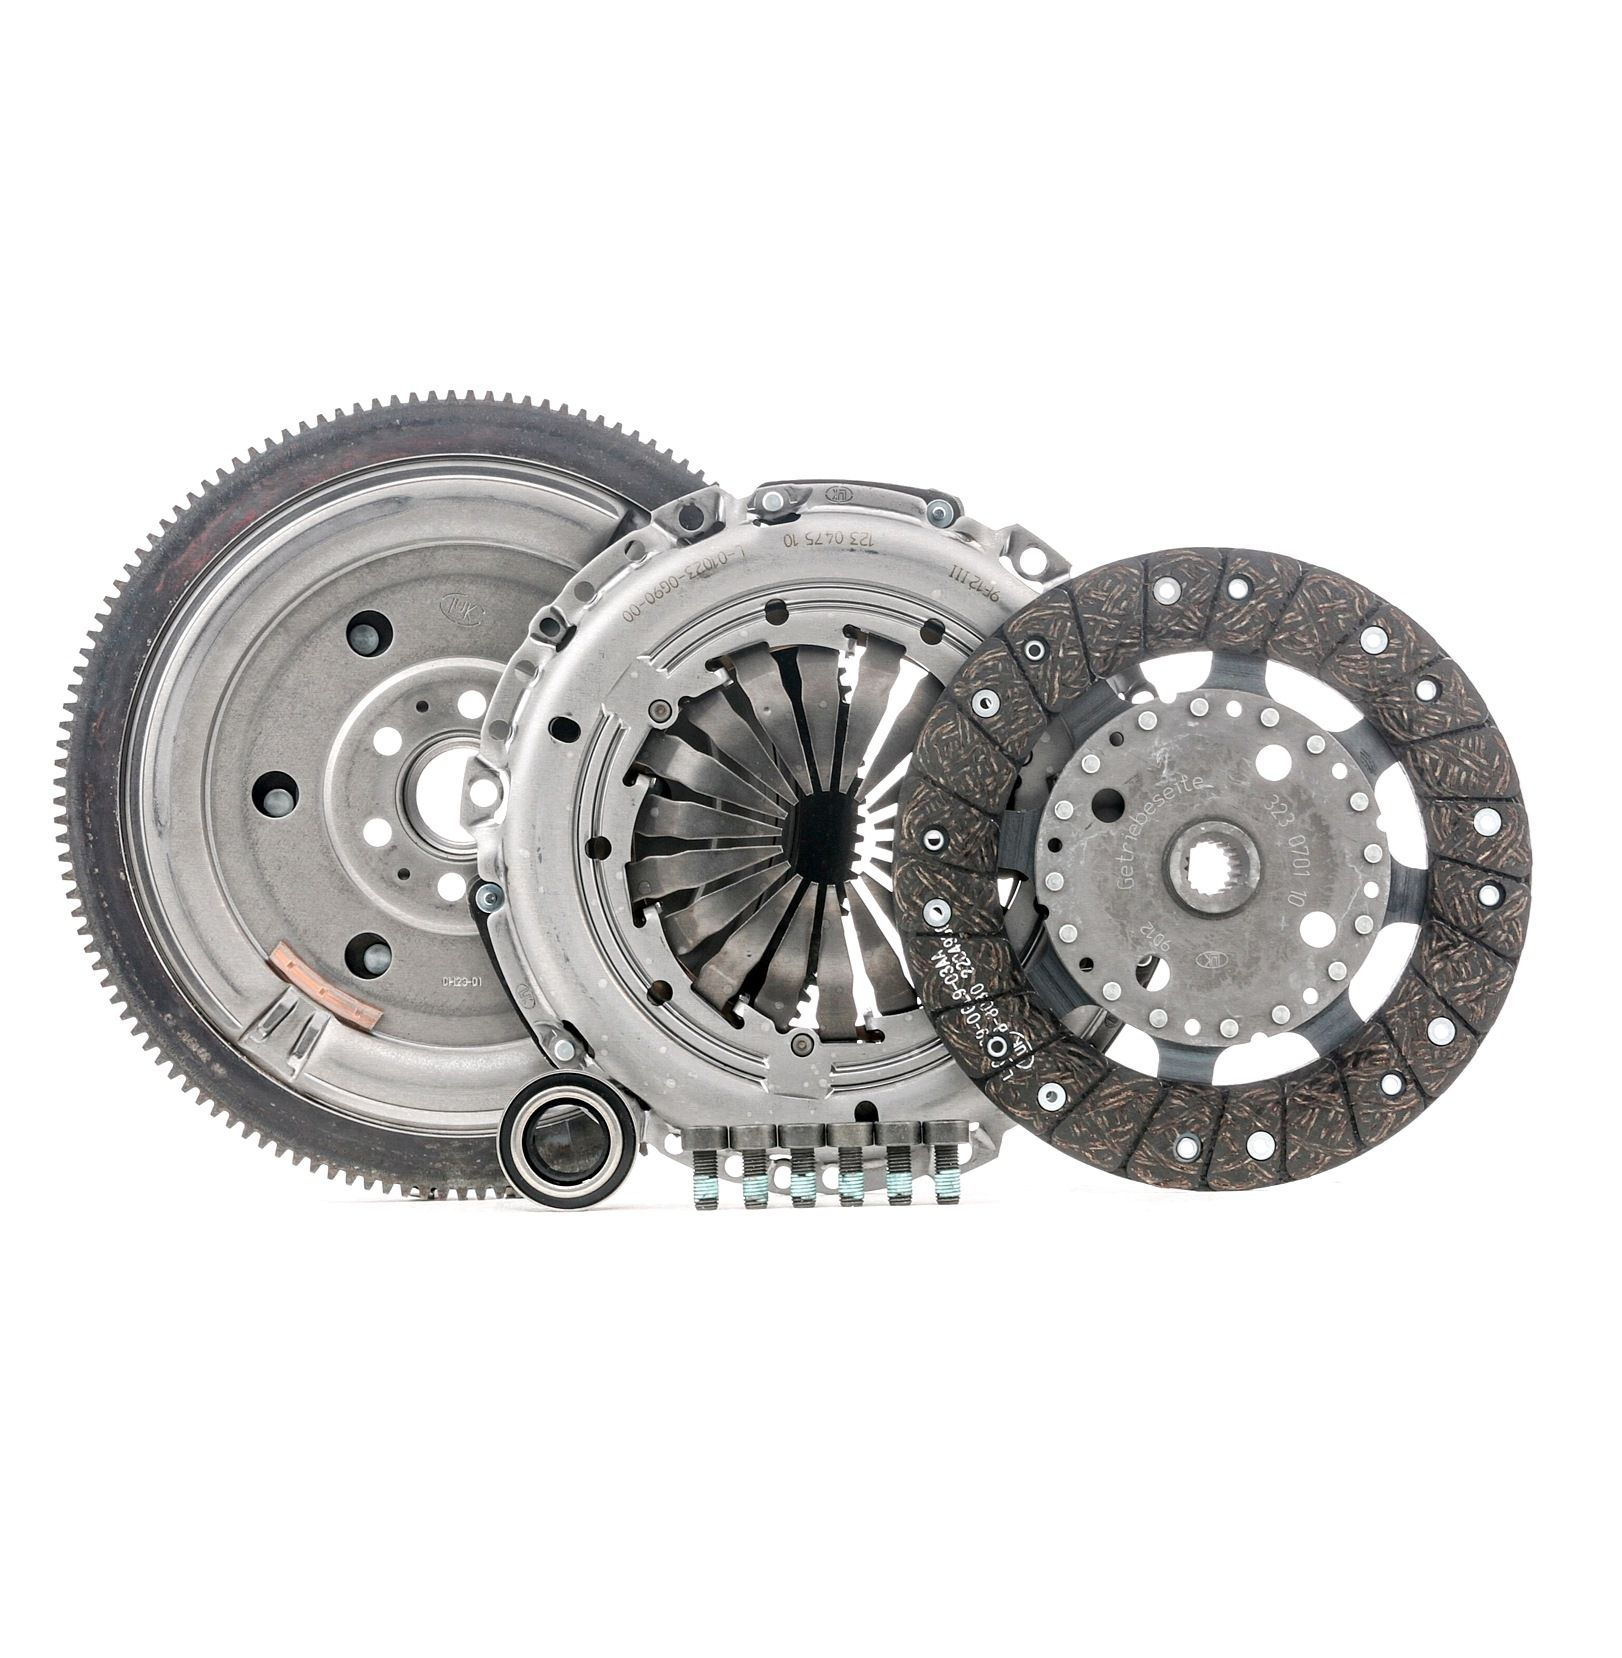 Complete clutch kit LuK 600 0084 00 rating